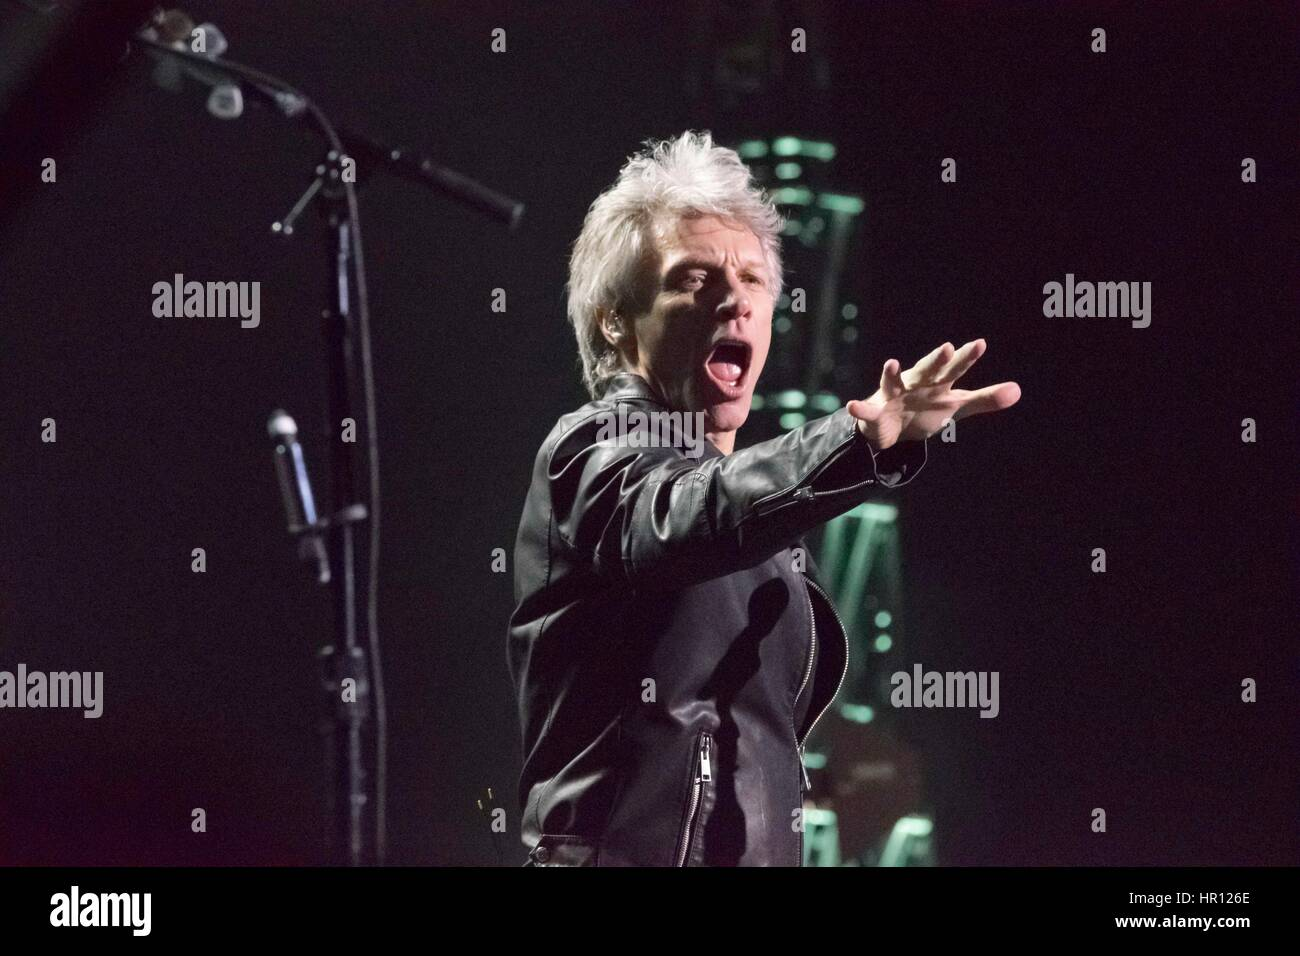 Las Vegas, Nevada, USA. 25th February 2017. Singer Jon Bon Jovi performs live at the T-Mobile Arena on February Stock Photo